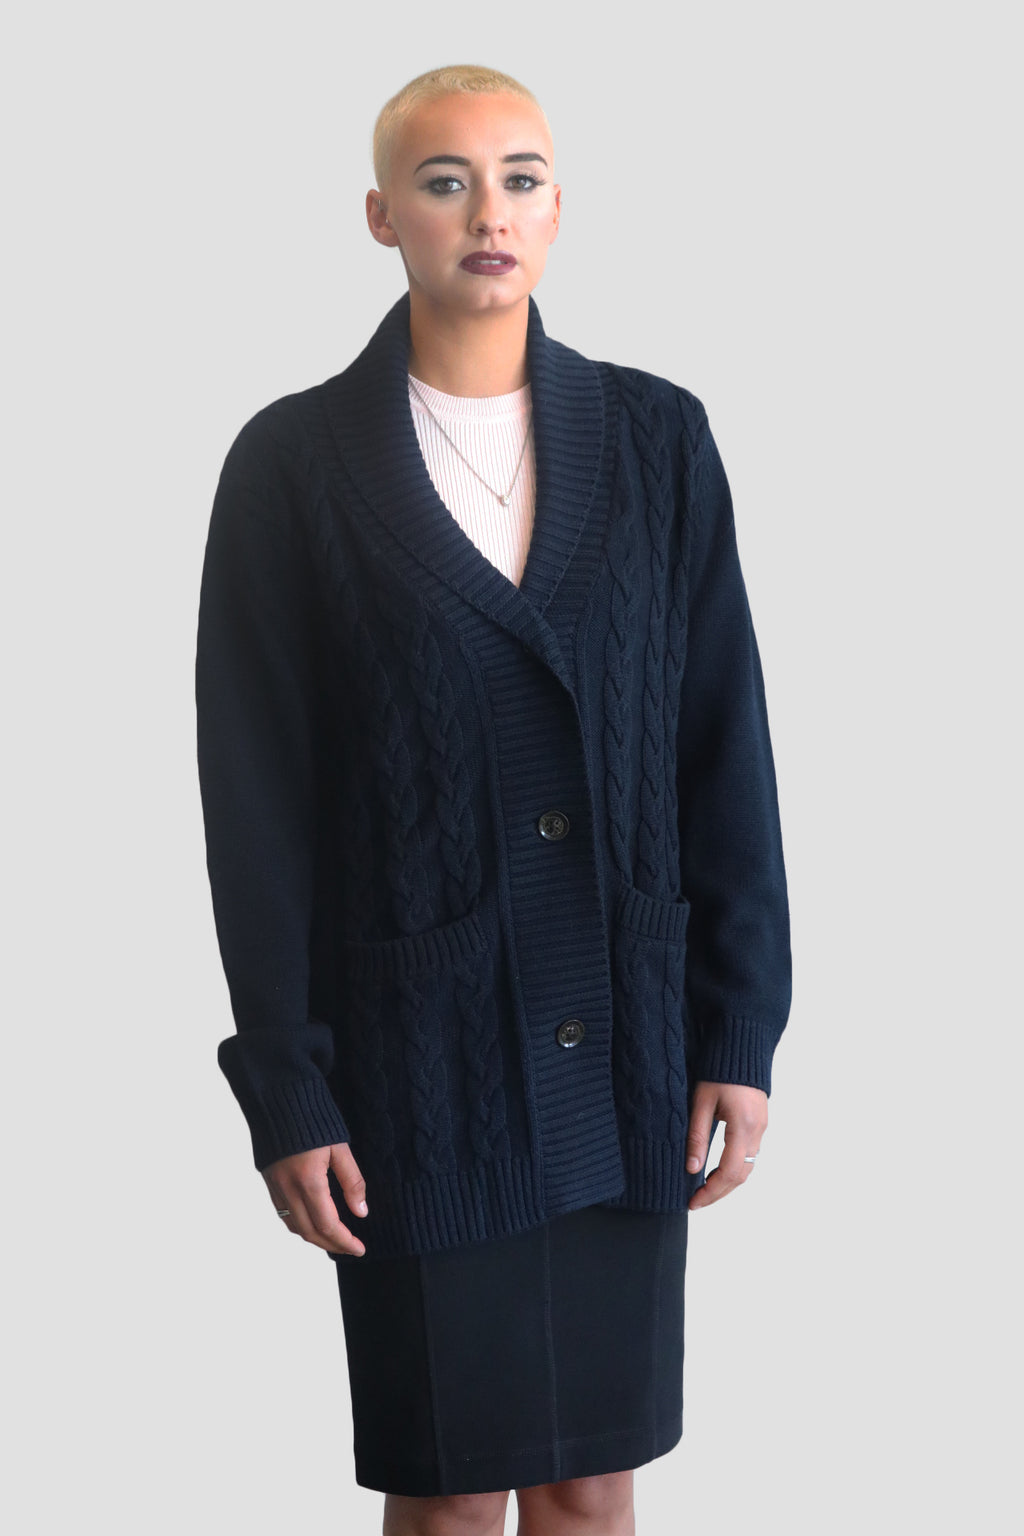 emma chai CABLE KNIT WOOL & SILK BUTTON-FRONT CARDIGAN Heavy knit Emma Chai wool-silk cardigan with pockets for women. @emmachaiofficial @mo2theem Kate harrison sumaila palla @rebeccaraereagan